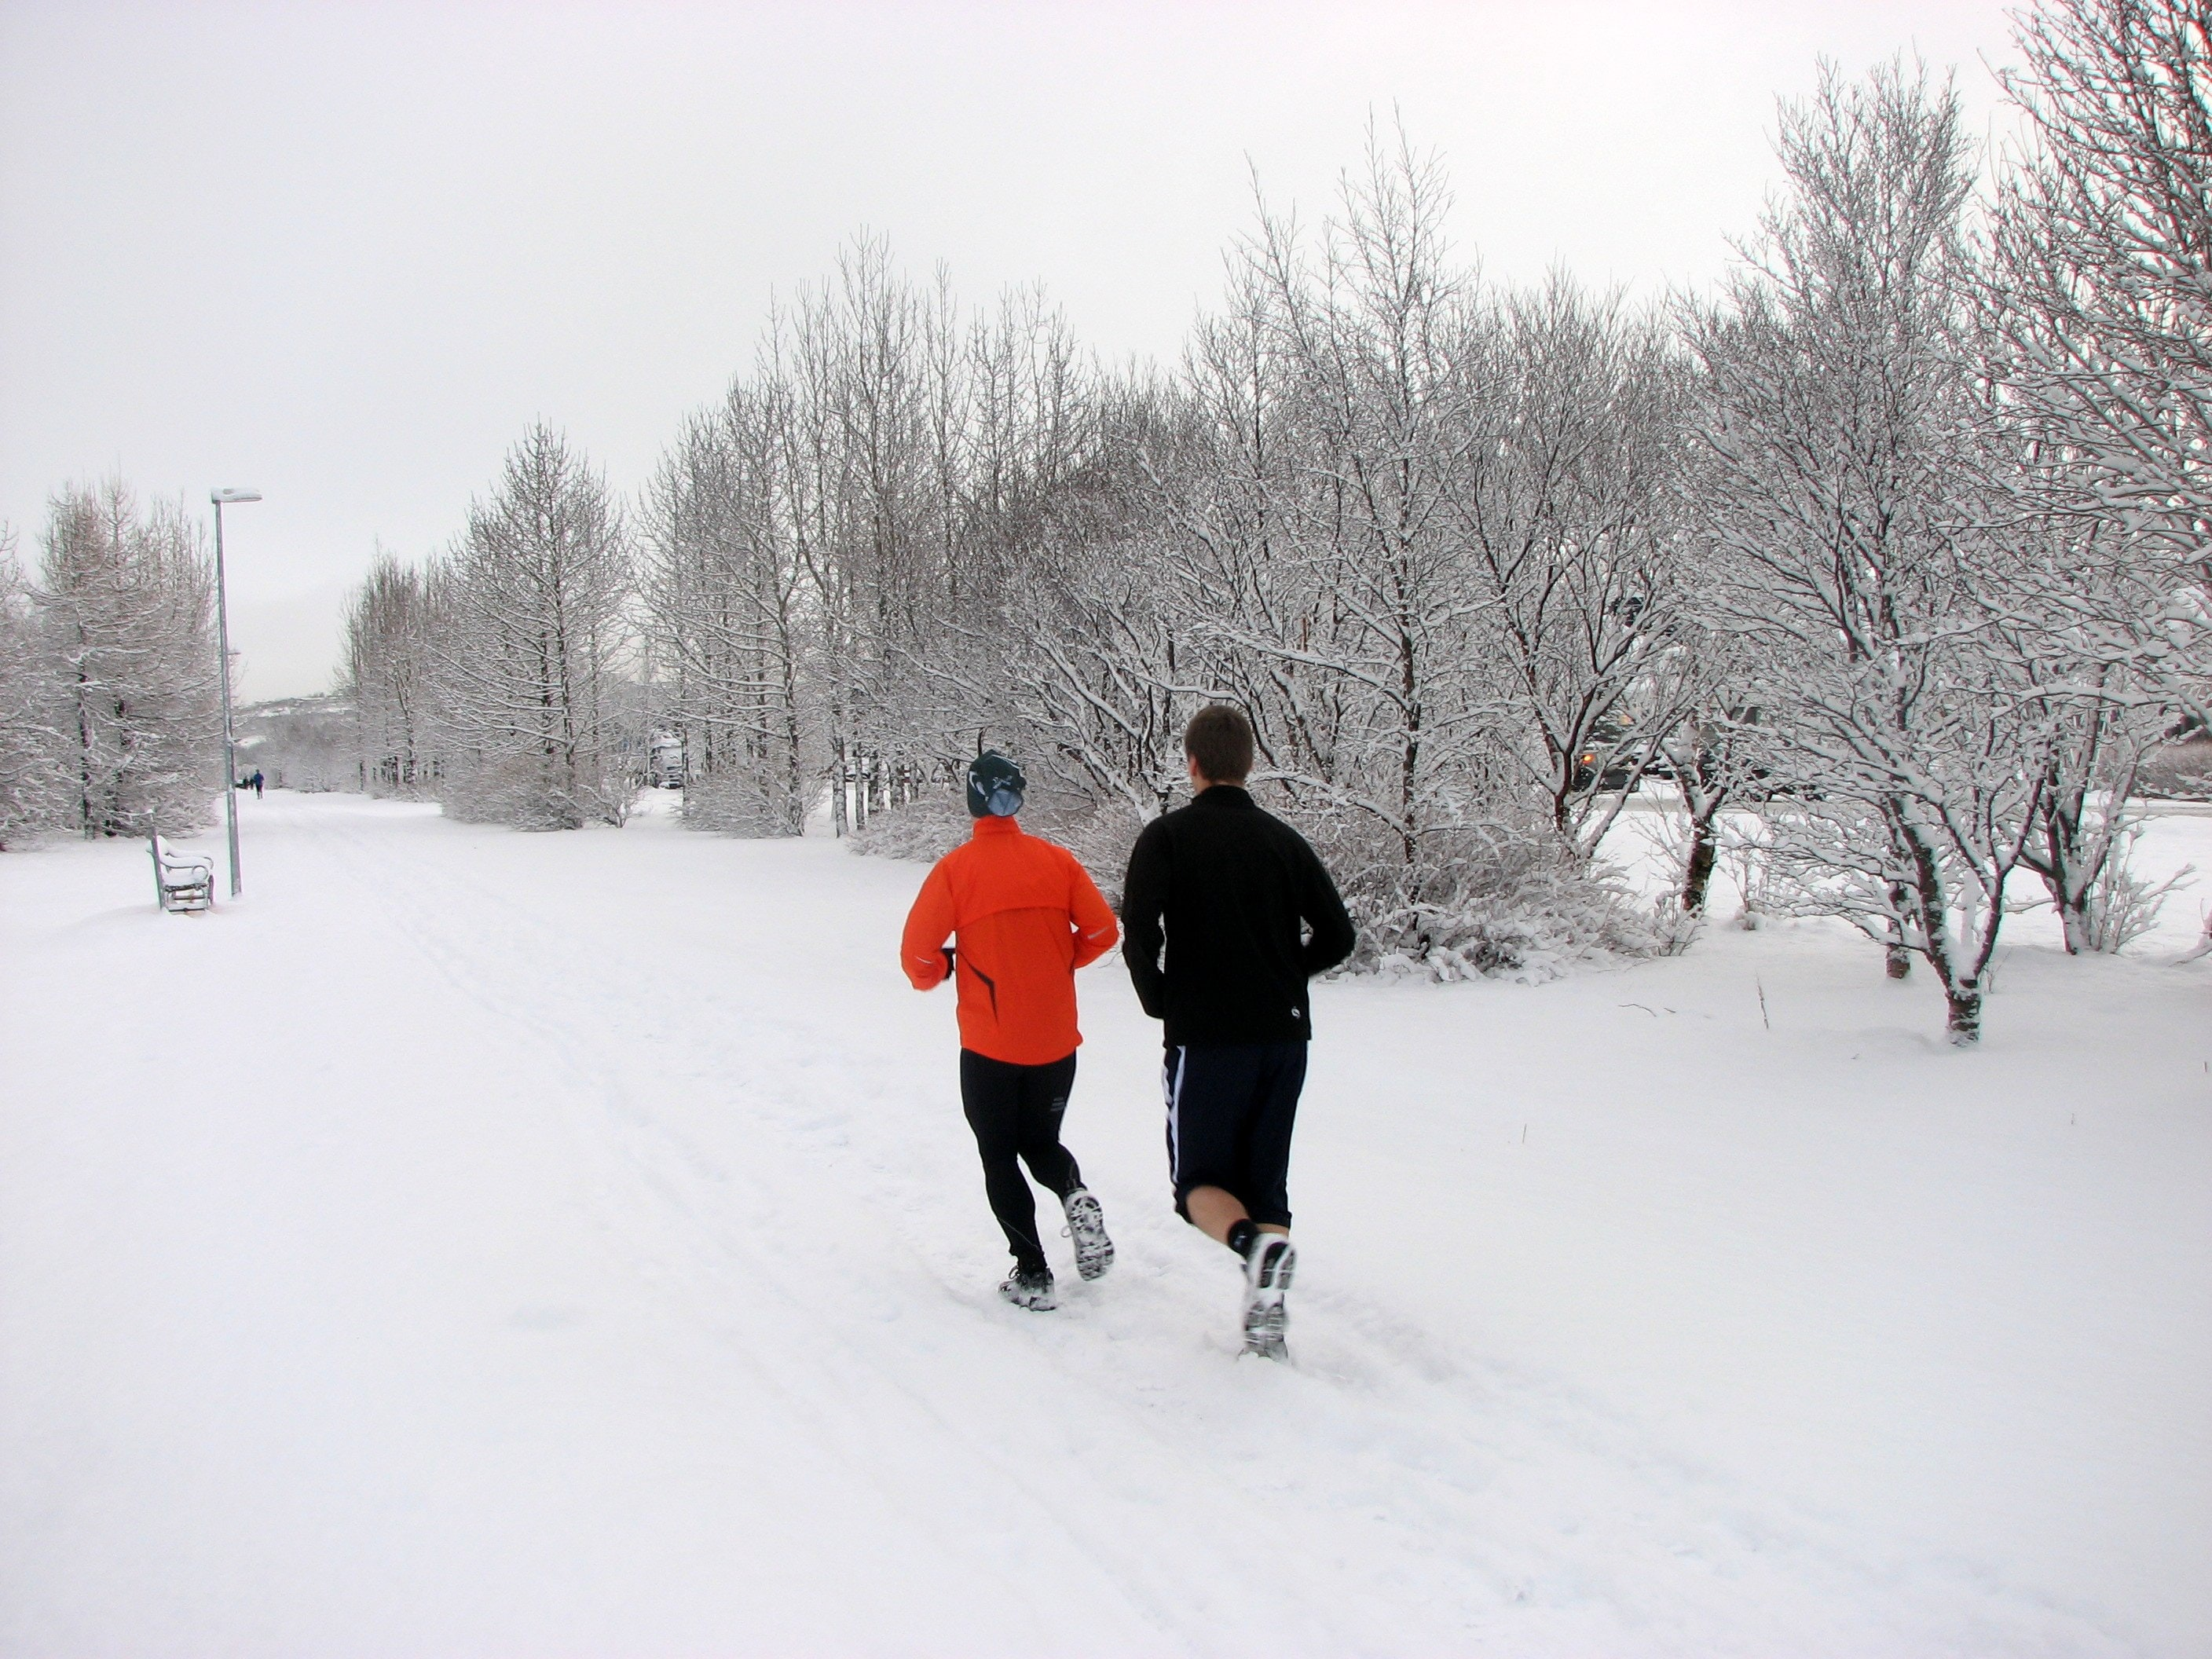 two persons running on snow field near trees